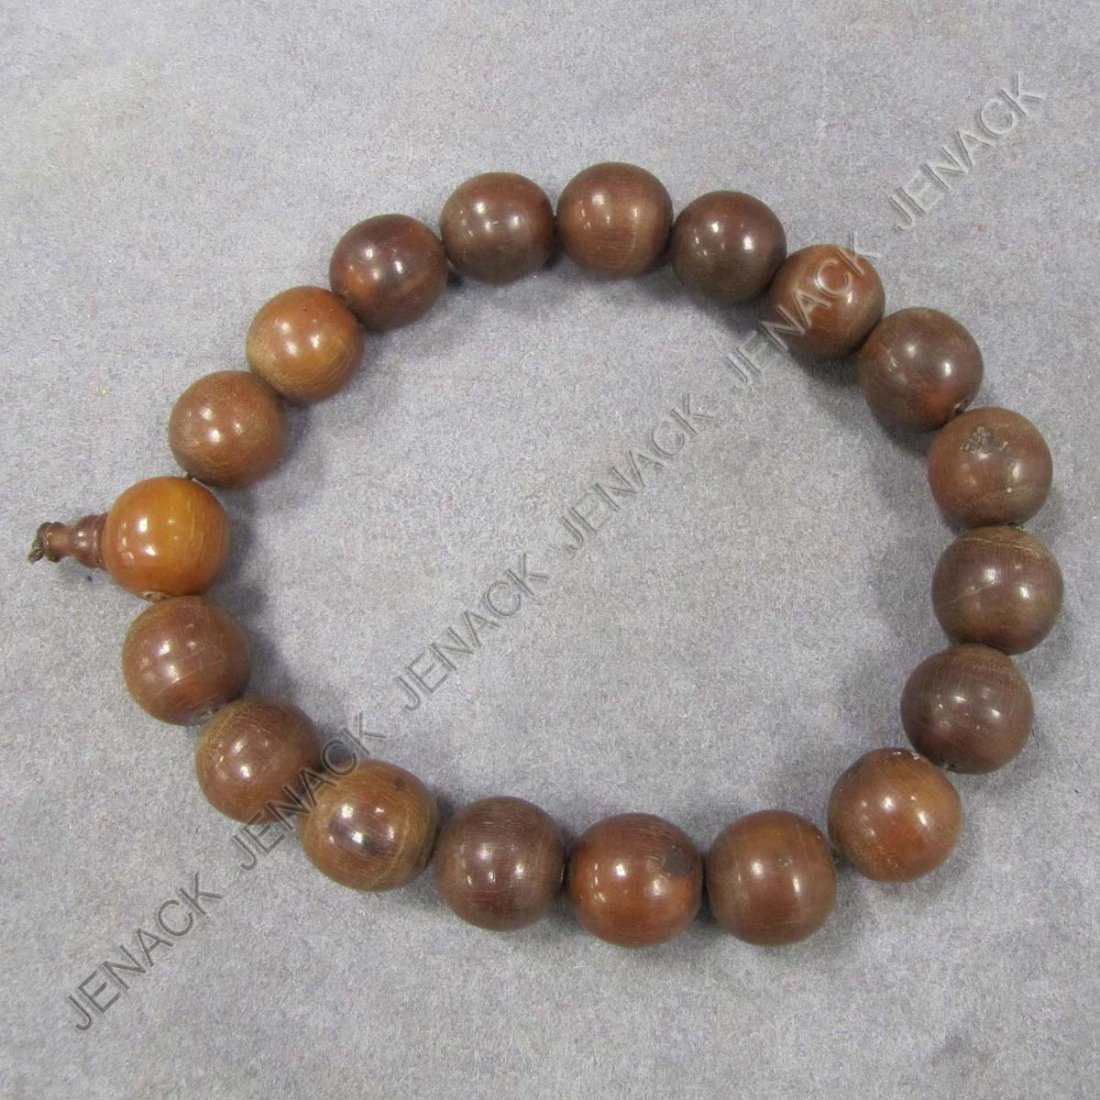 21: CHINESE CARVED HORN BEADS